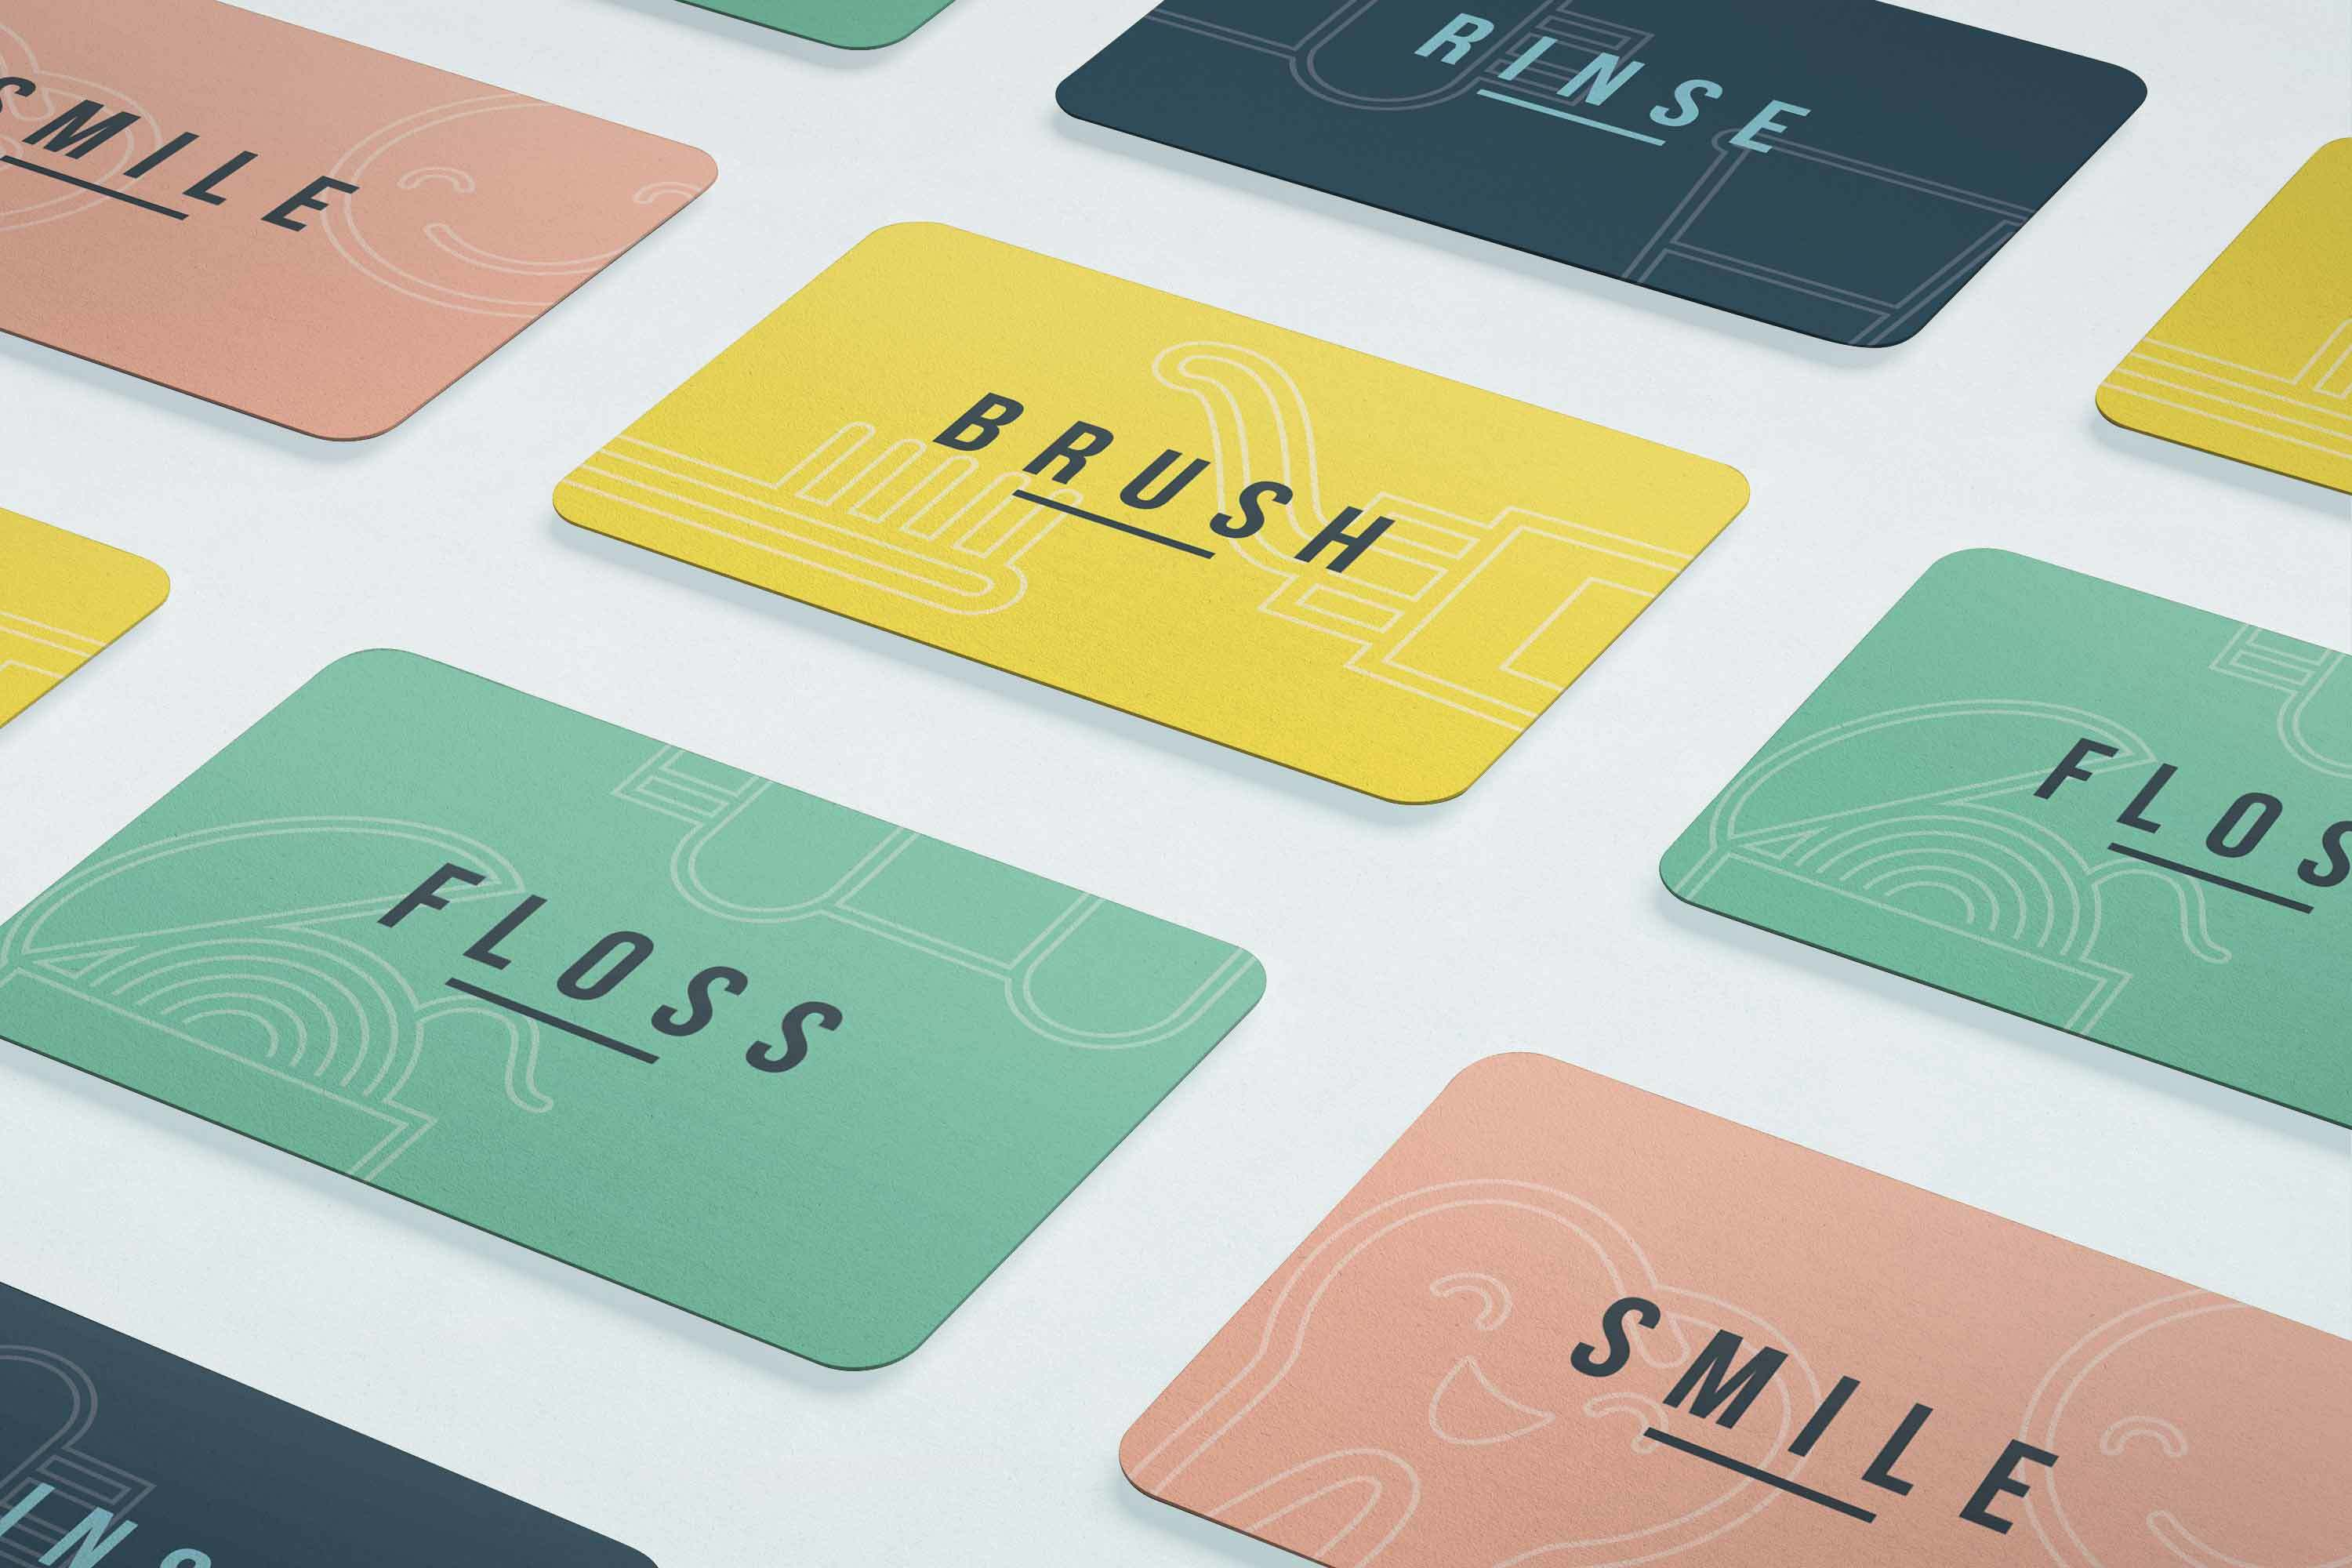 brunswick dentist branding business cards